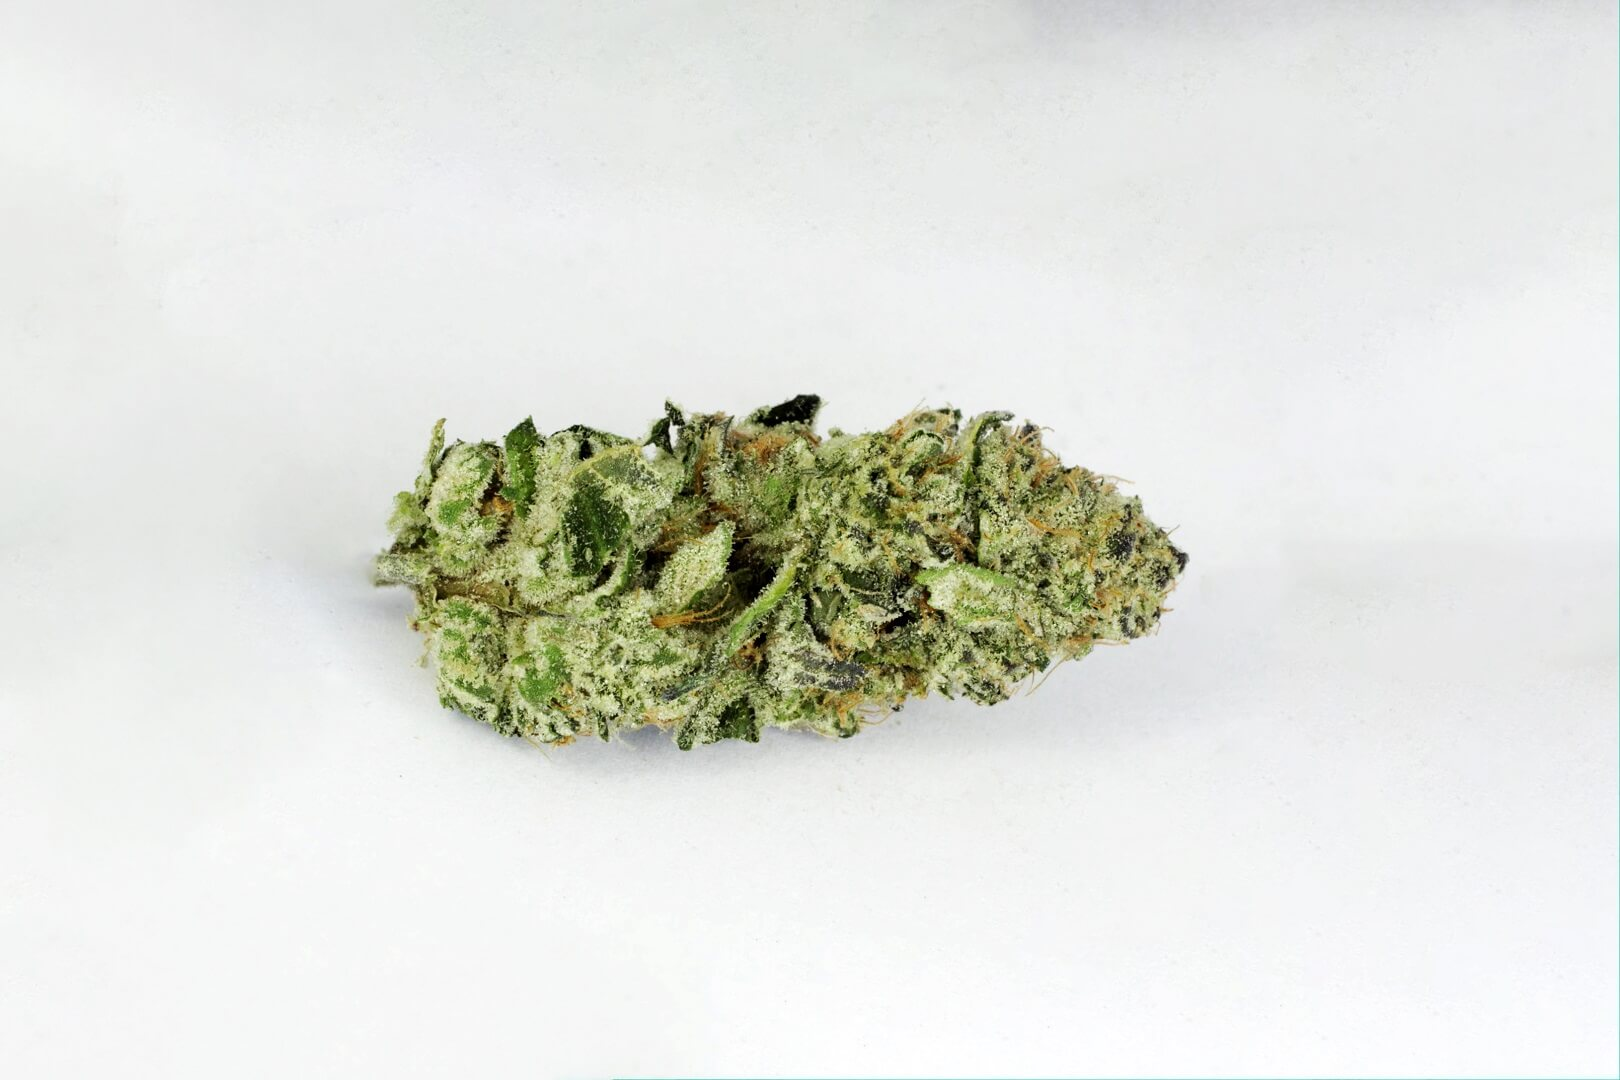 Girl Scout Cookies strain photo 2